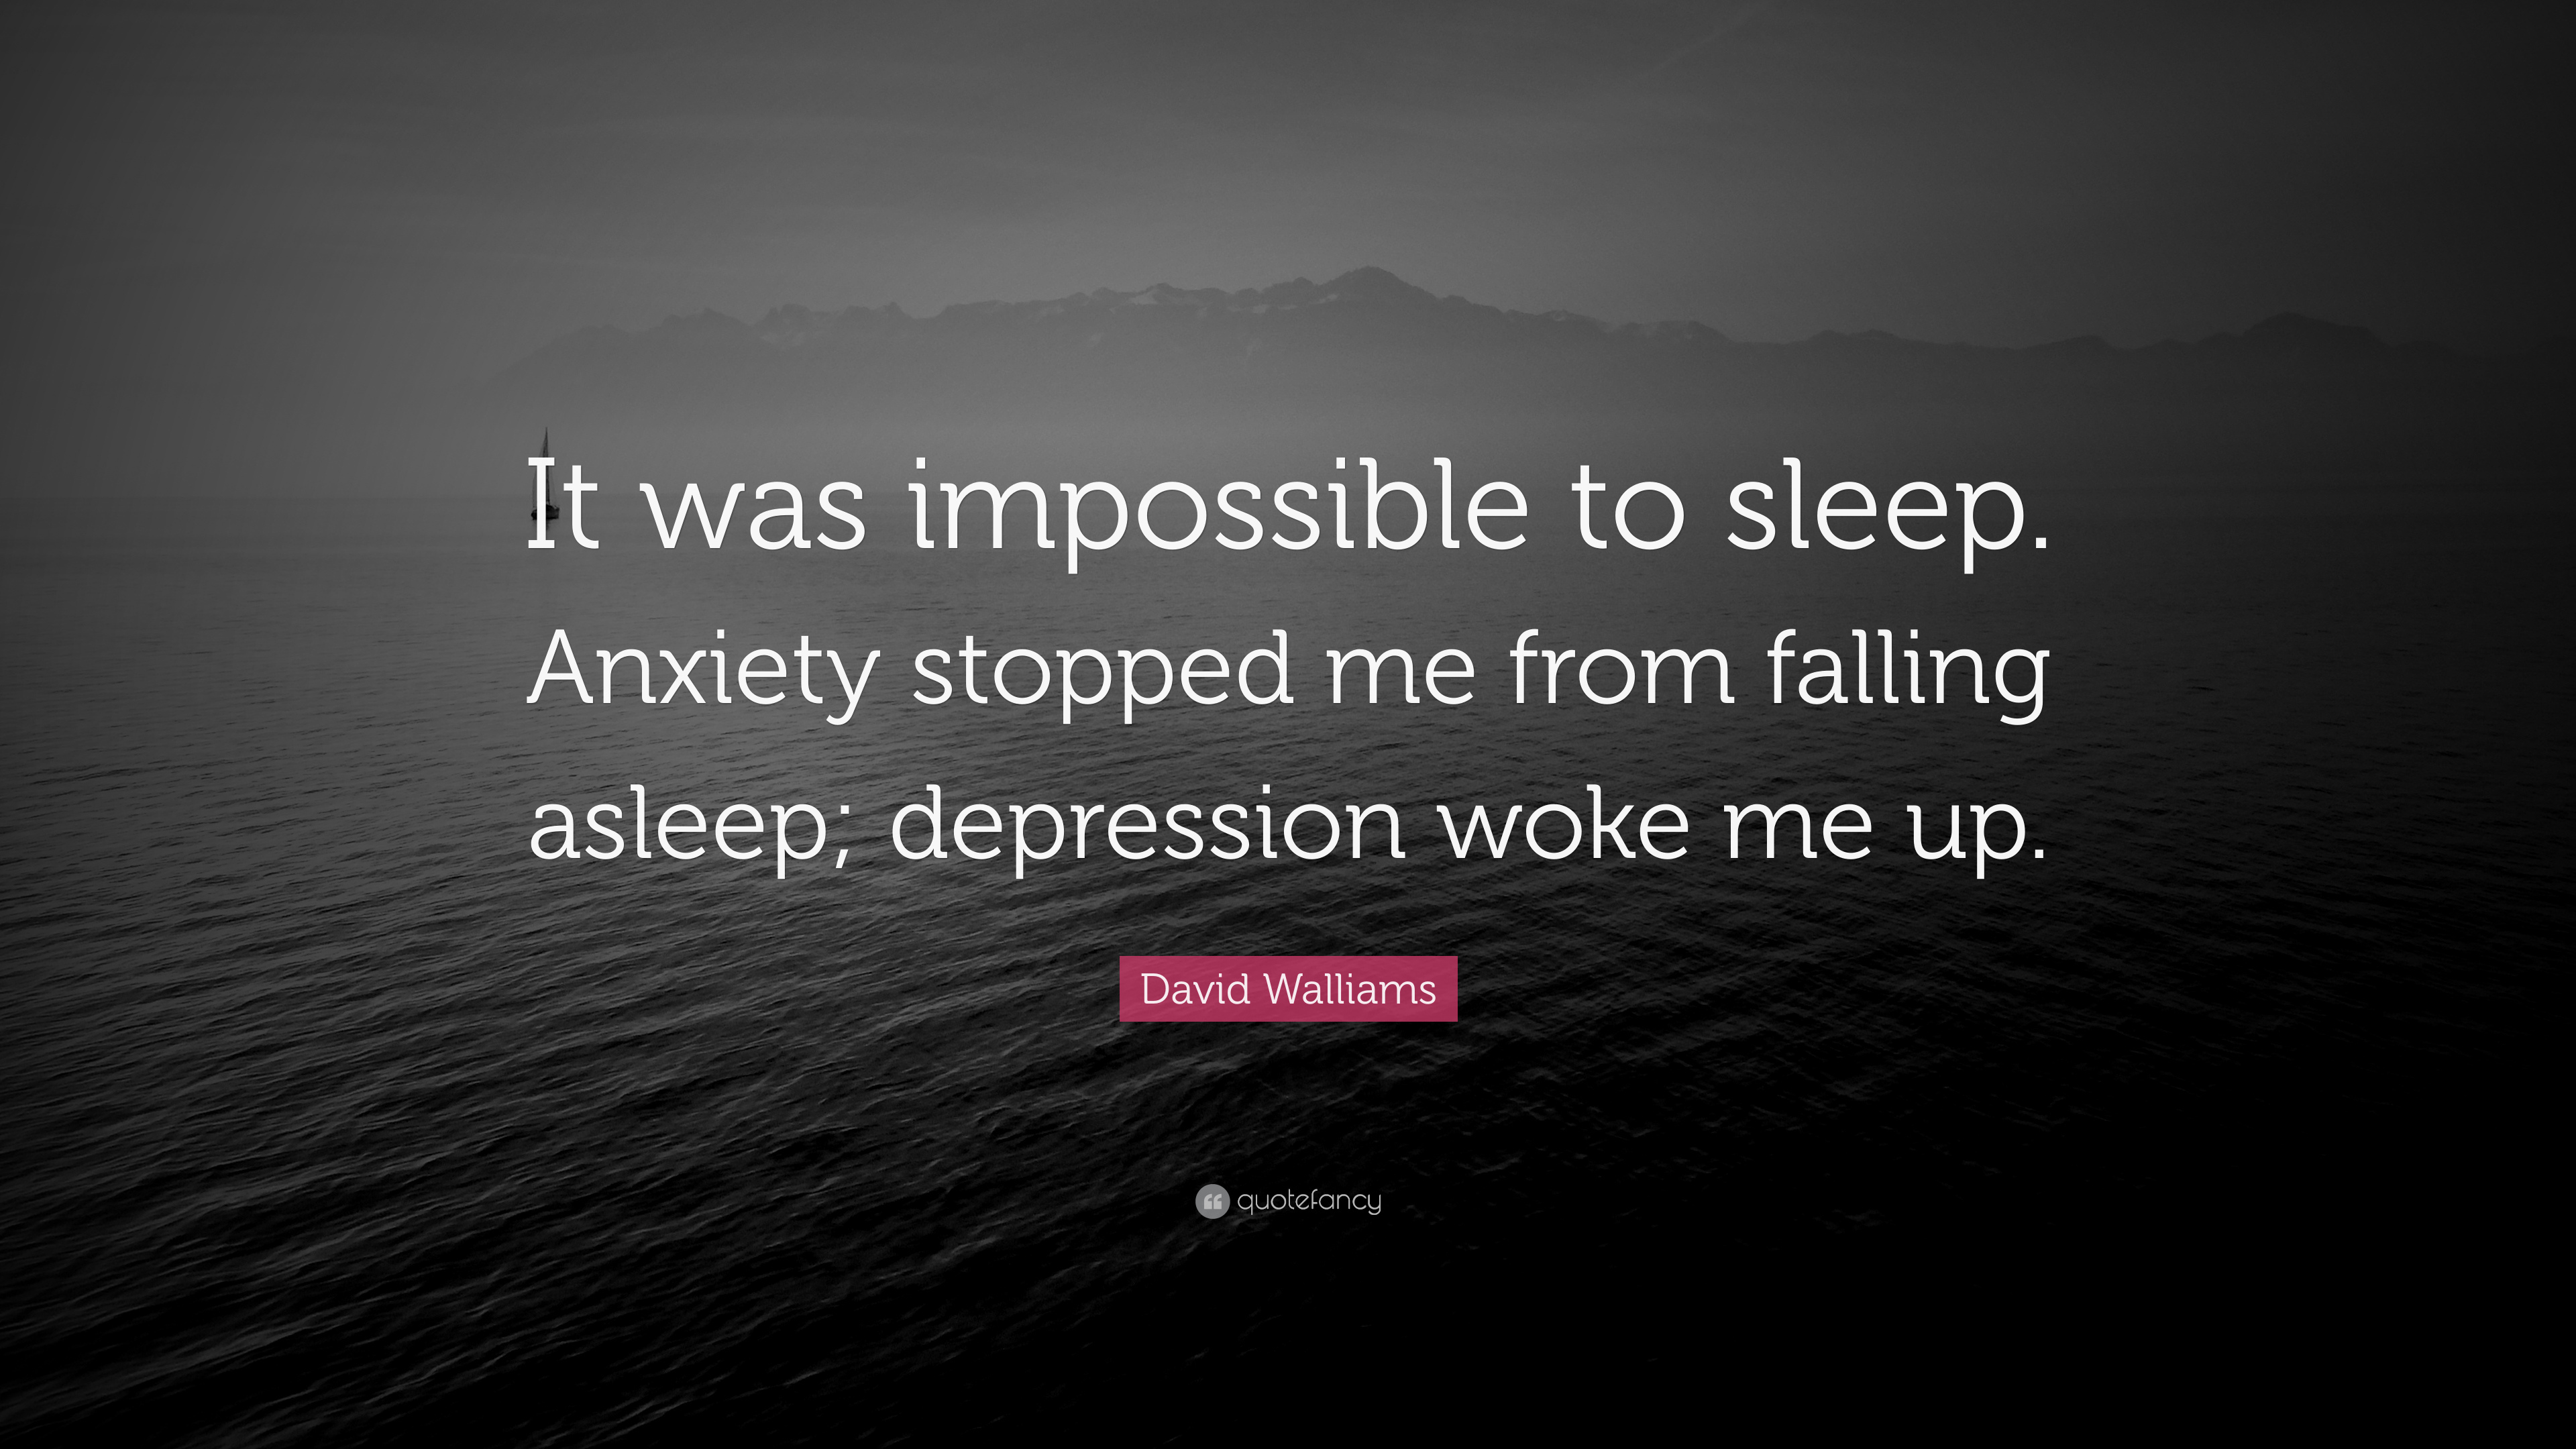 David Walliams Quote It Was Impossible To Sleep Anxiety Stopped Me From Falling Asleep Depression Woke Me Up 7 Wallpapers Quotefancy